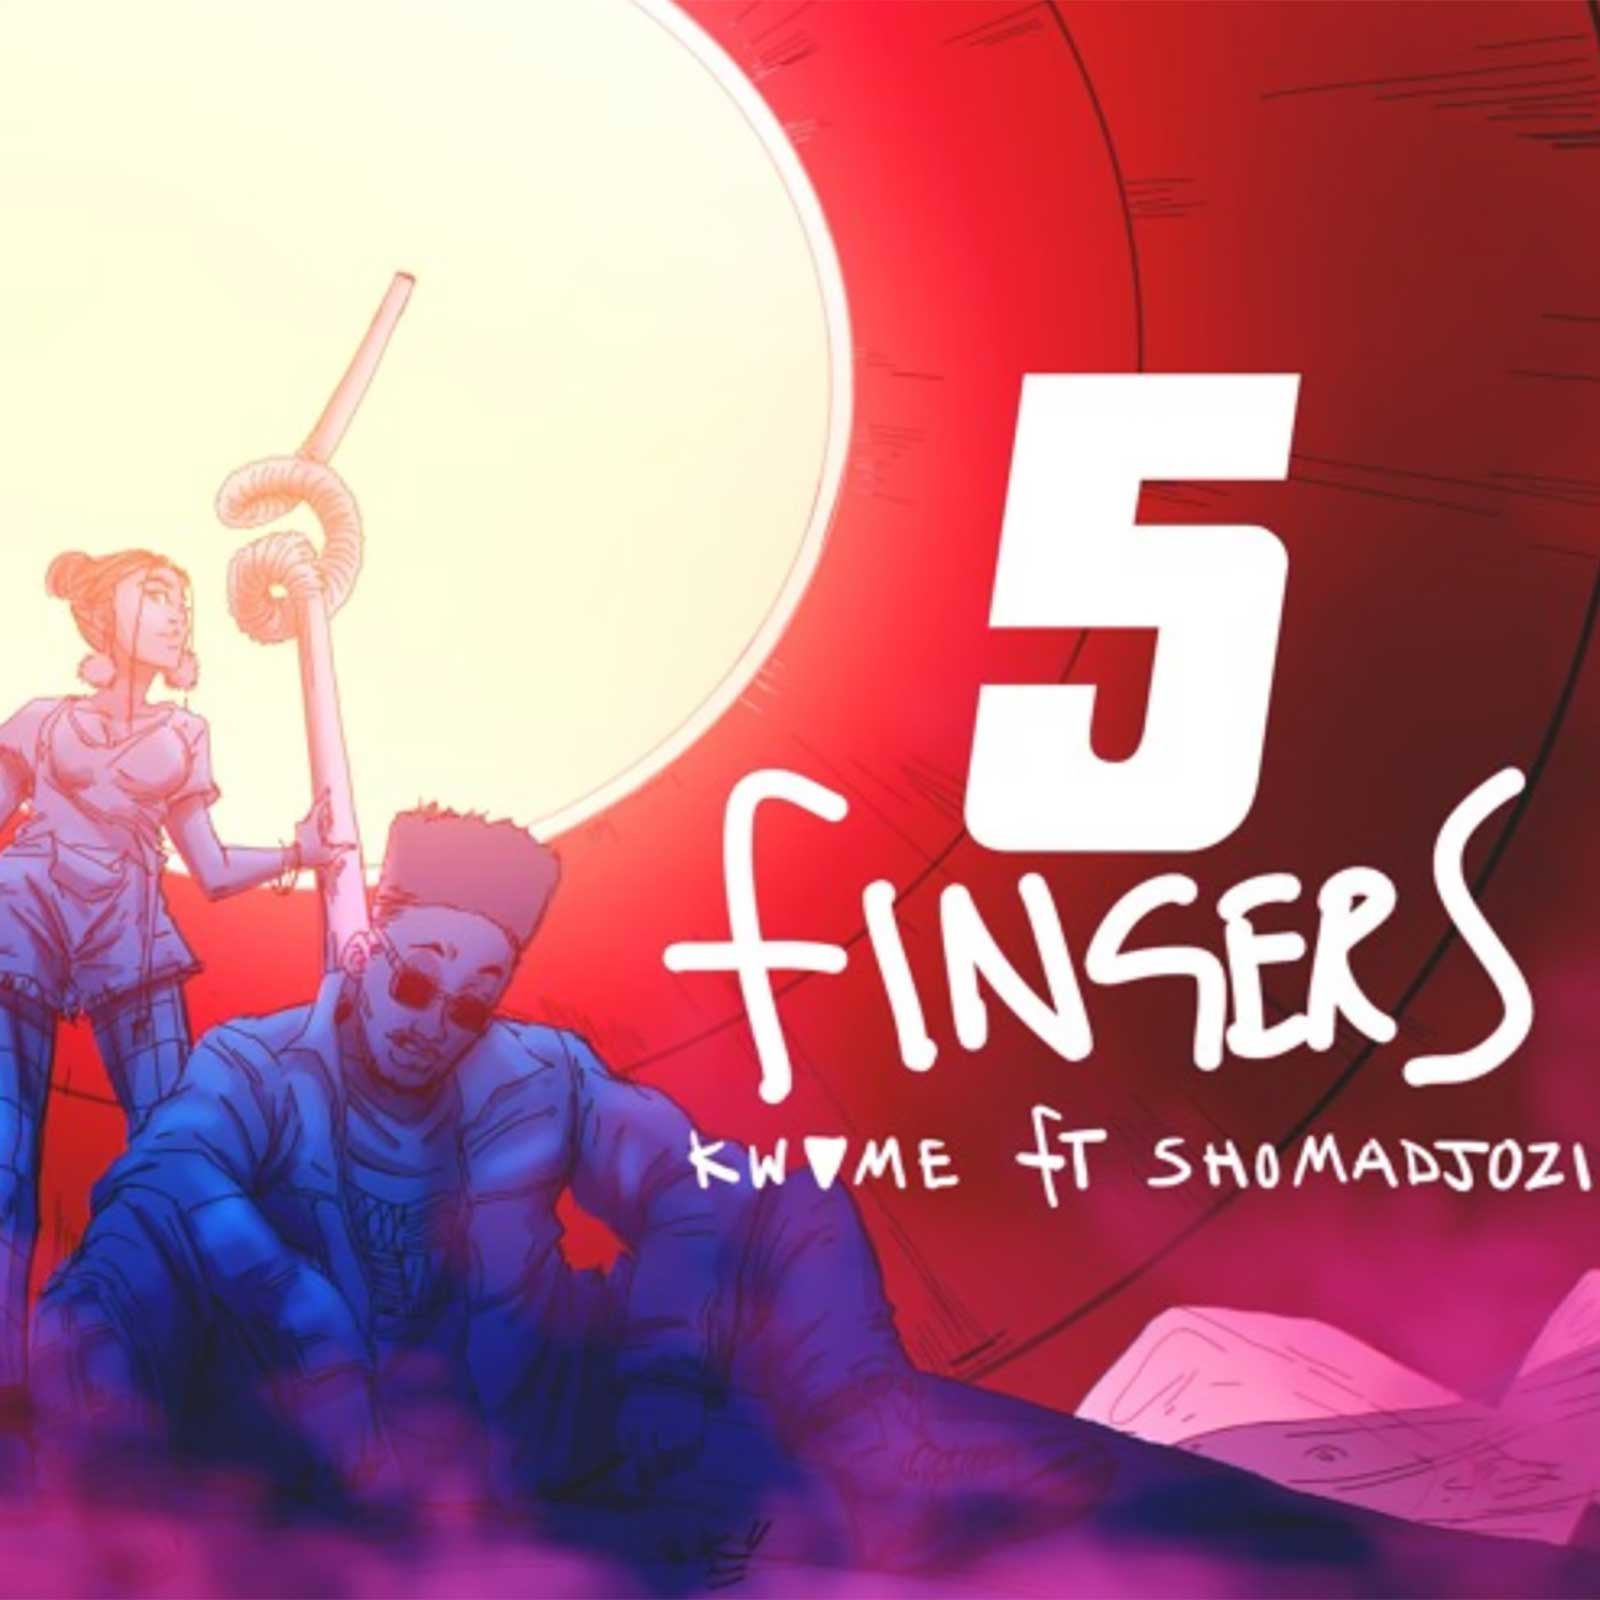 5 Fingers by Kwame ft. Sho Madjozi